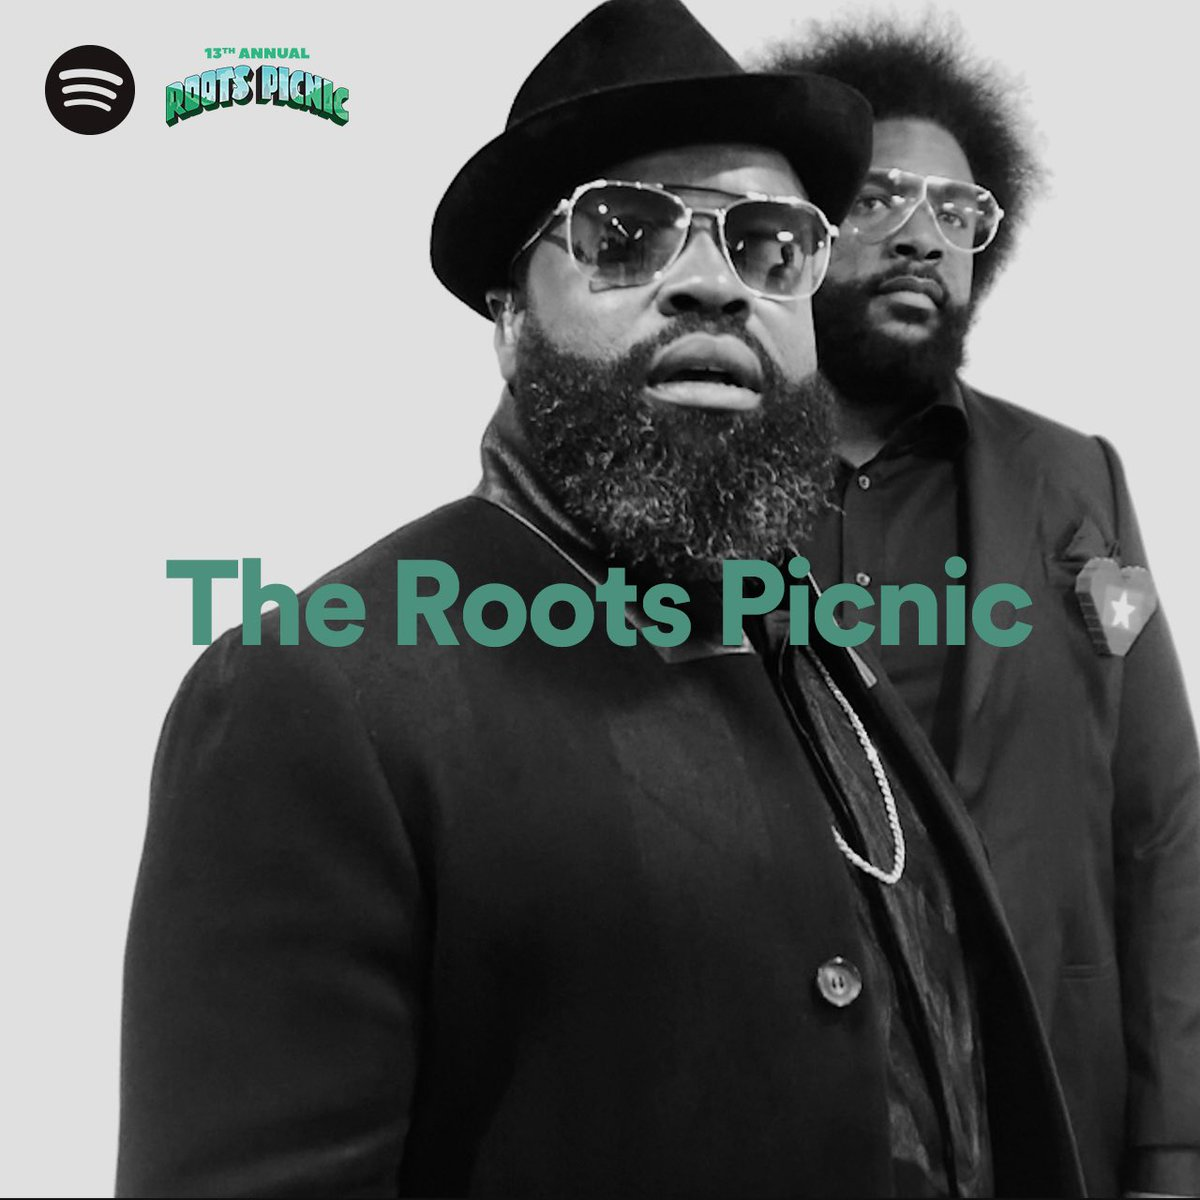 BONG! BONG!  It's the official #RootsPicnic 2020 @Spotify playlist featuring music from some of your favorite @RootsPicnic Virtual Experience performers, happening THIS Saturday June 27 at 8pm EST/5pm PST. Be sure to tune in and press play! 🎧▶️➡️ https://t.co/Kfx97bAA48! https://t.co/vnXaA4miZv